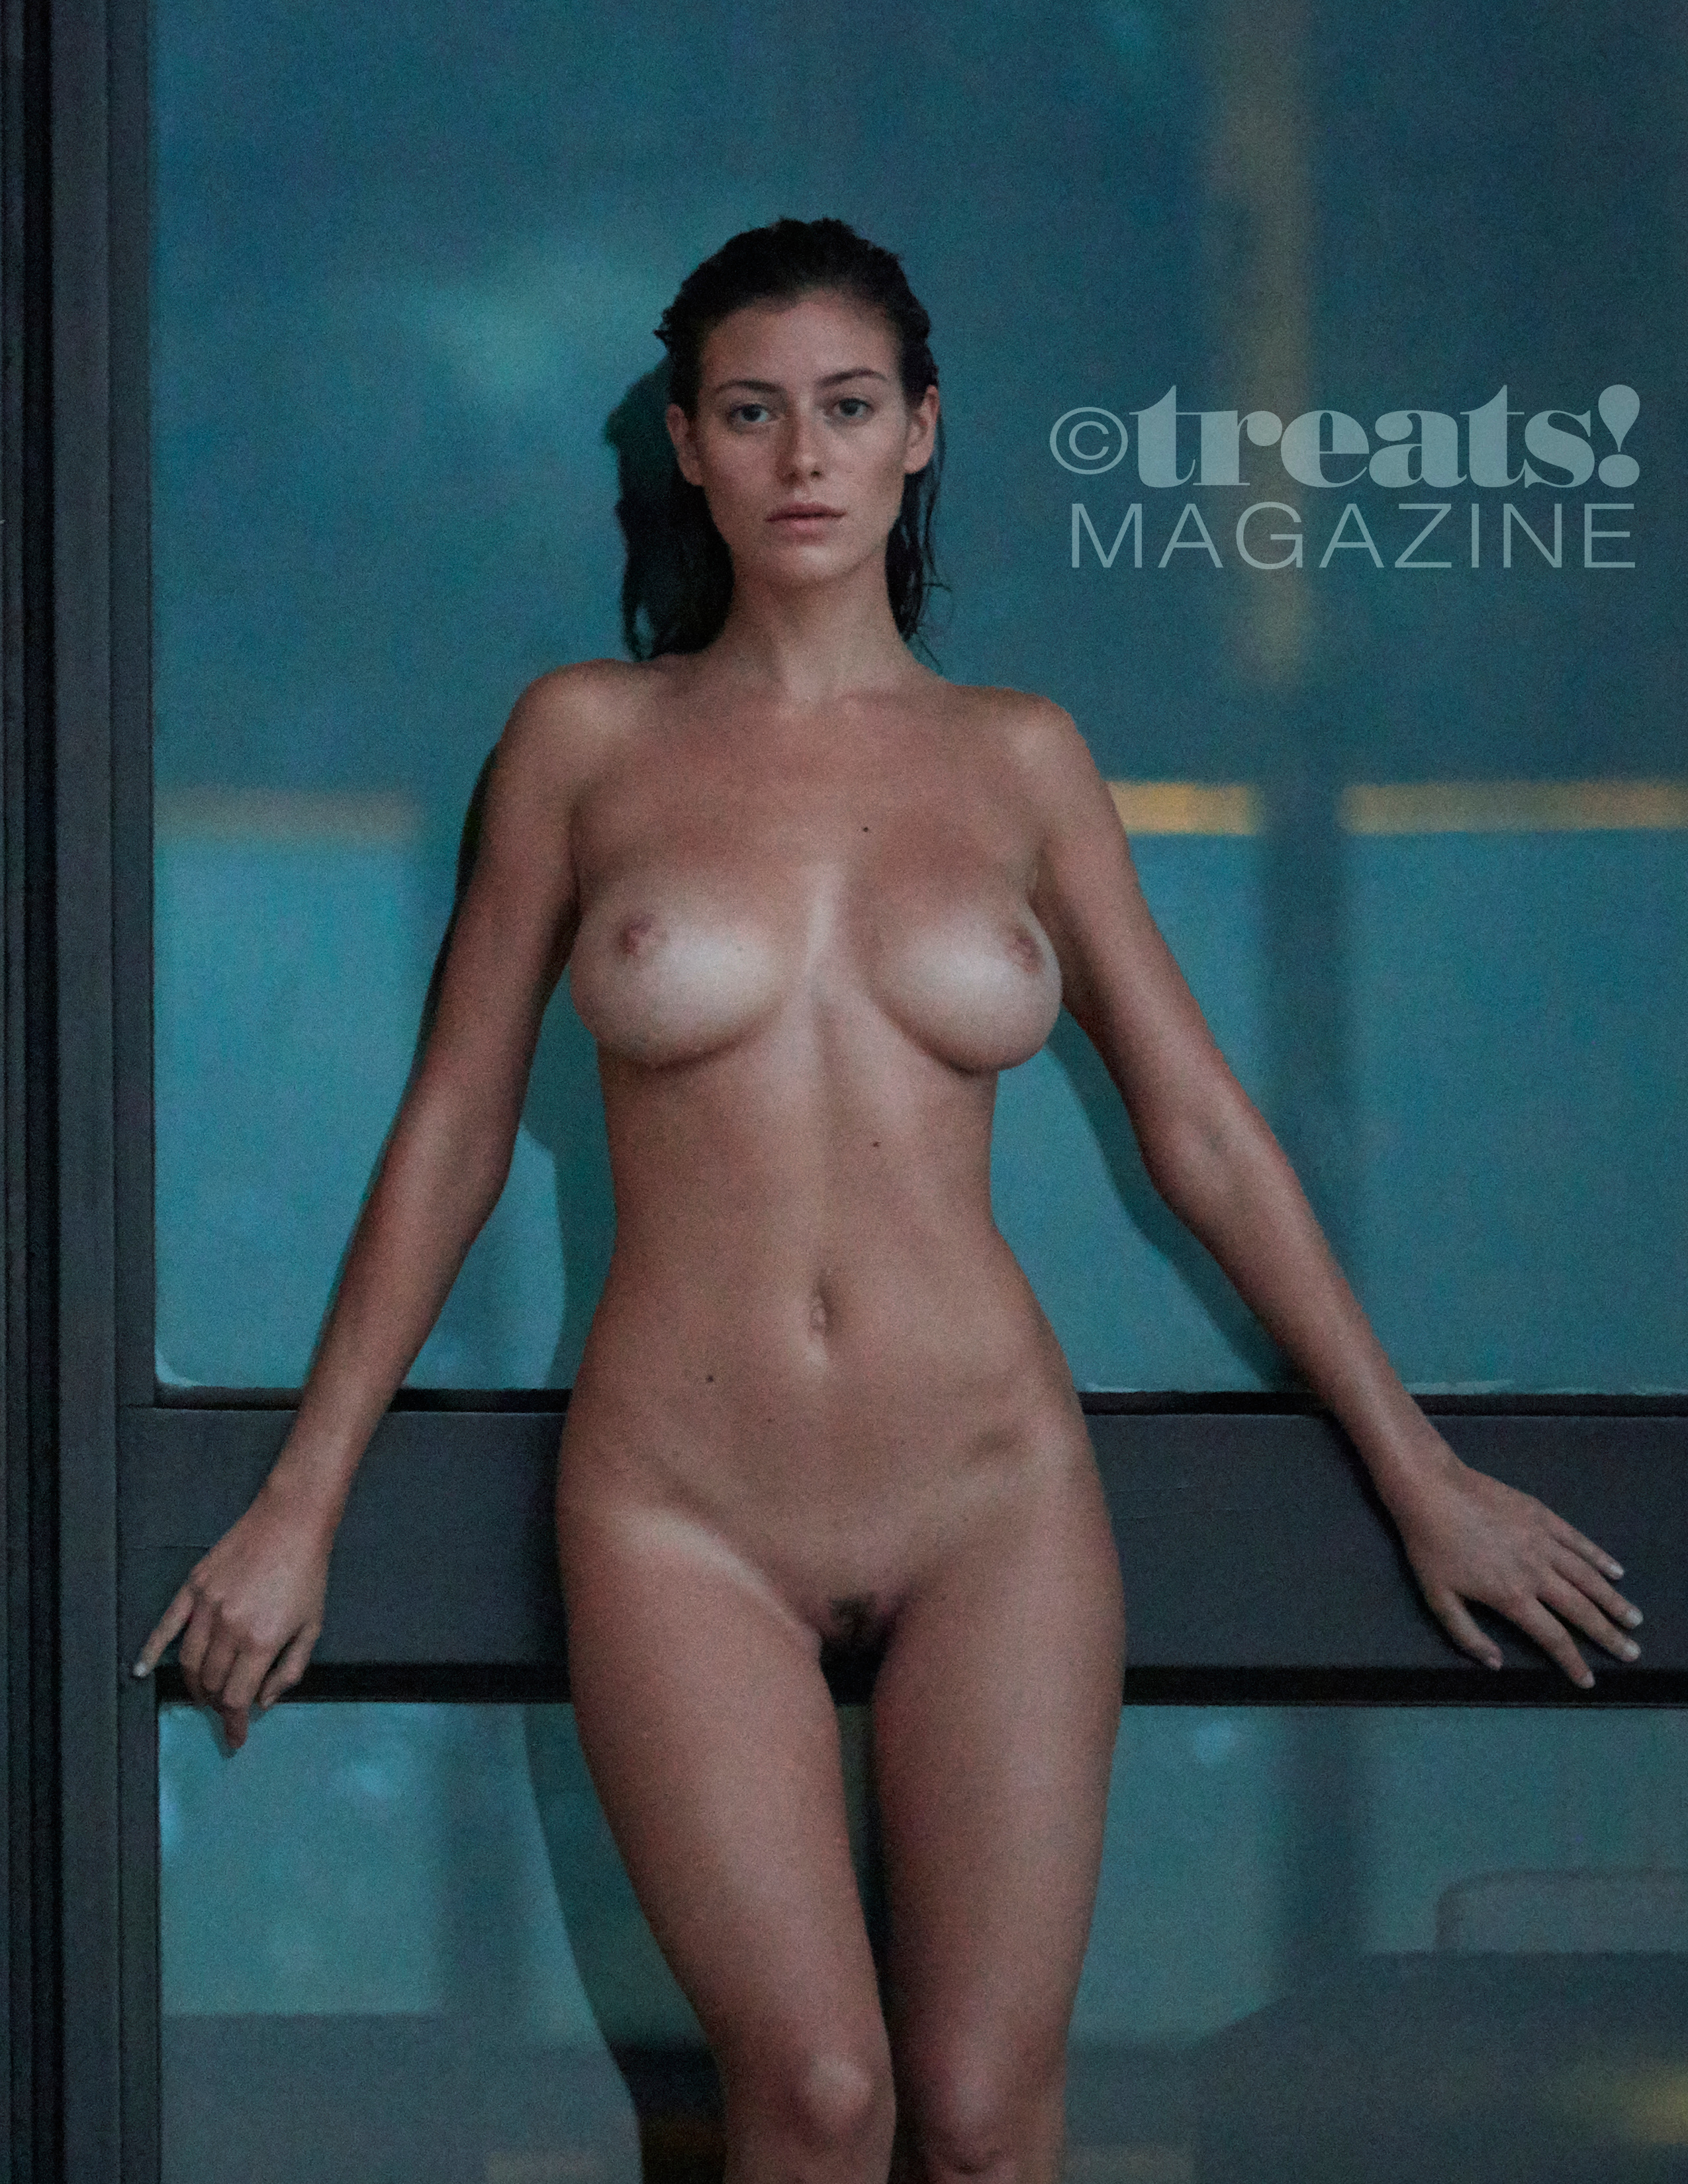 alejandra-guilmant-perfect-nude-body-erotic-treats-magazine-by-david-bellemere-19